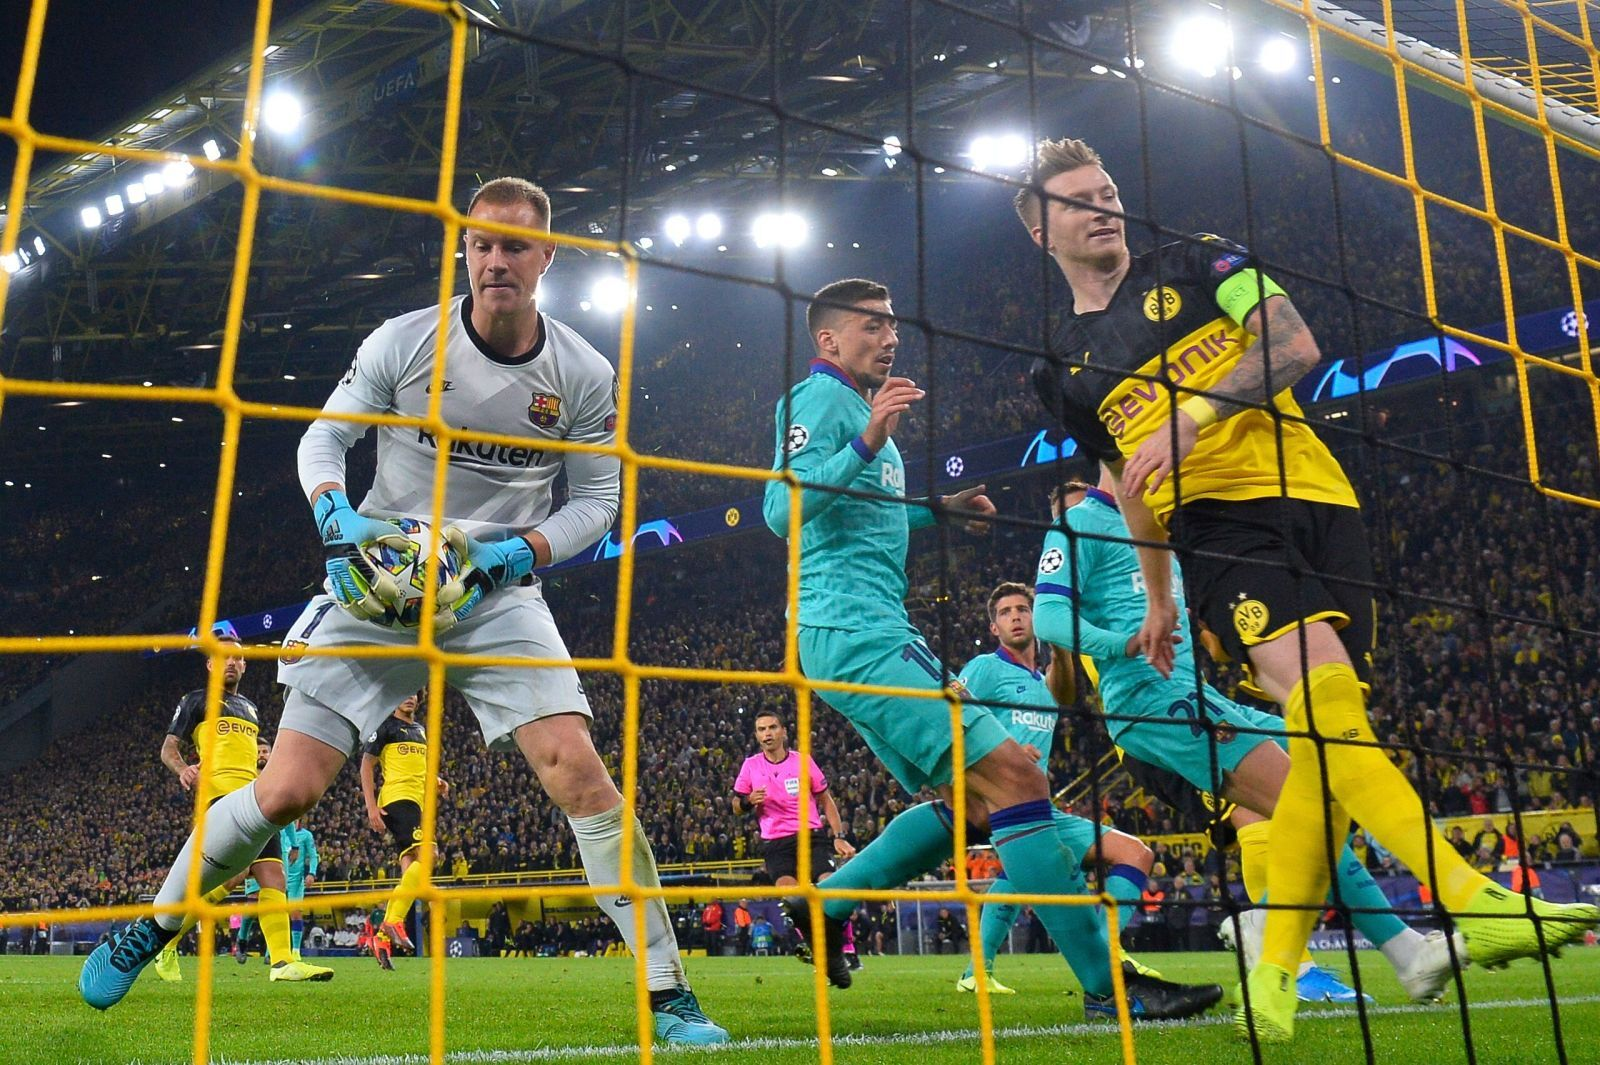 Barcelona survive Borussia Dortmund onslaught in Champions League opener